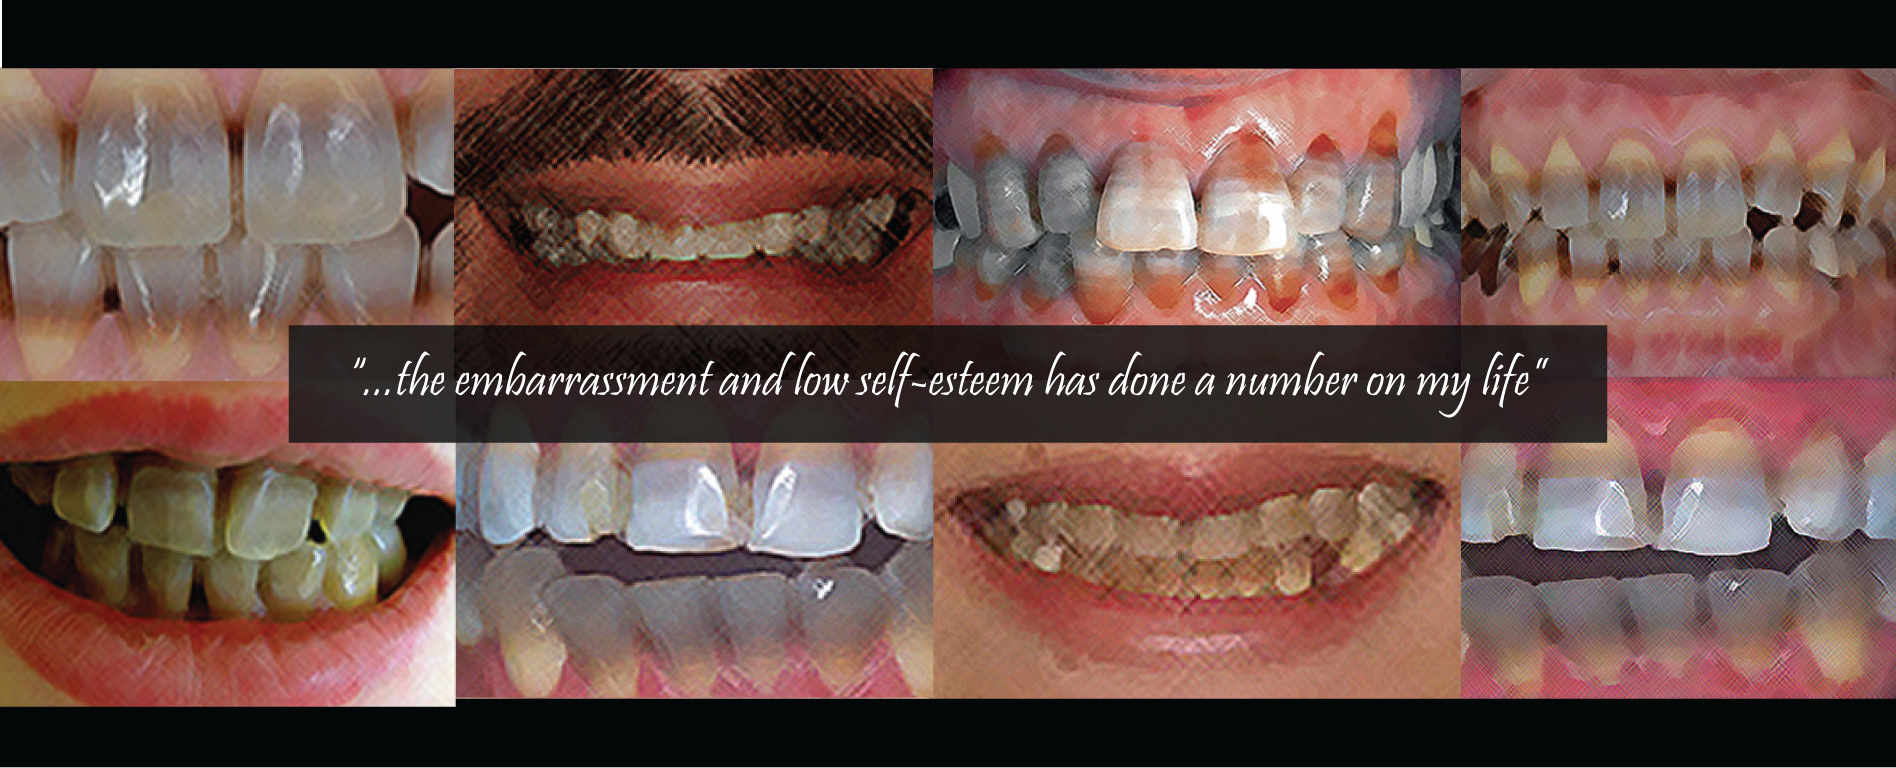 Tetracycline Teeth Staining, Our Impact, Affecting Change, banner with quote